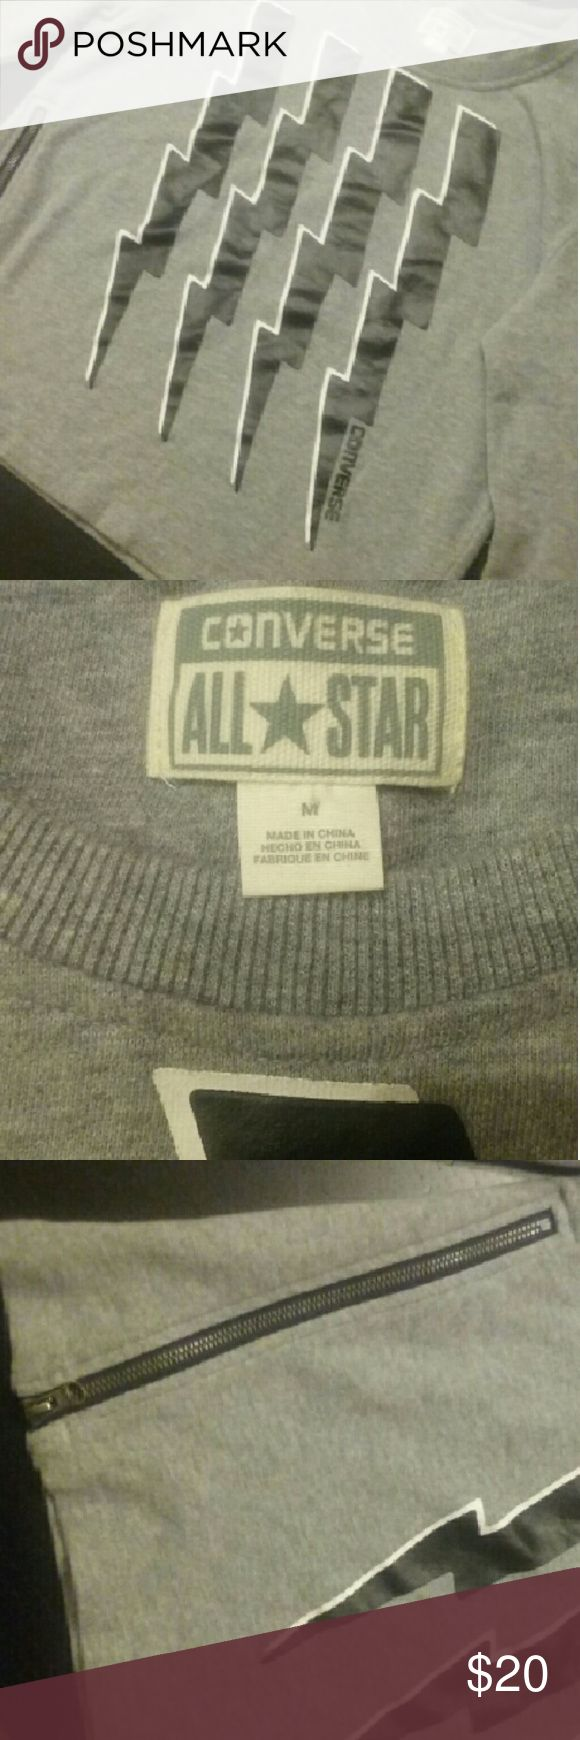 Converse Zip Side Sweatshirt. Only worn once. Perfect condition.  Zipper works. Super cute! No stains, no holes. Converse Tops